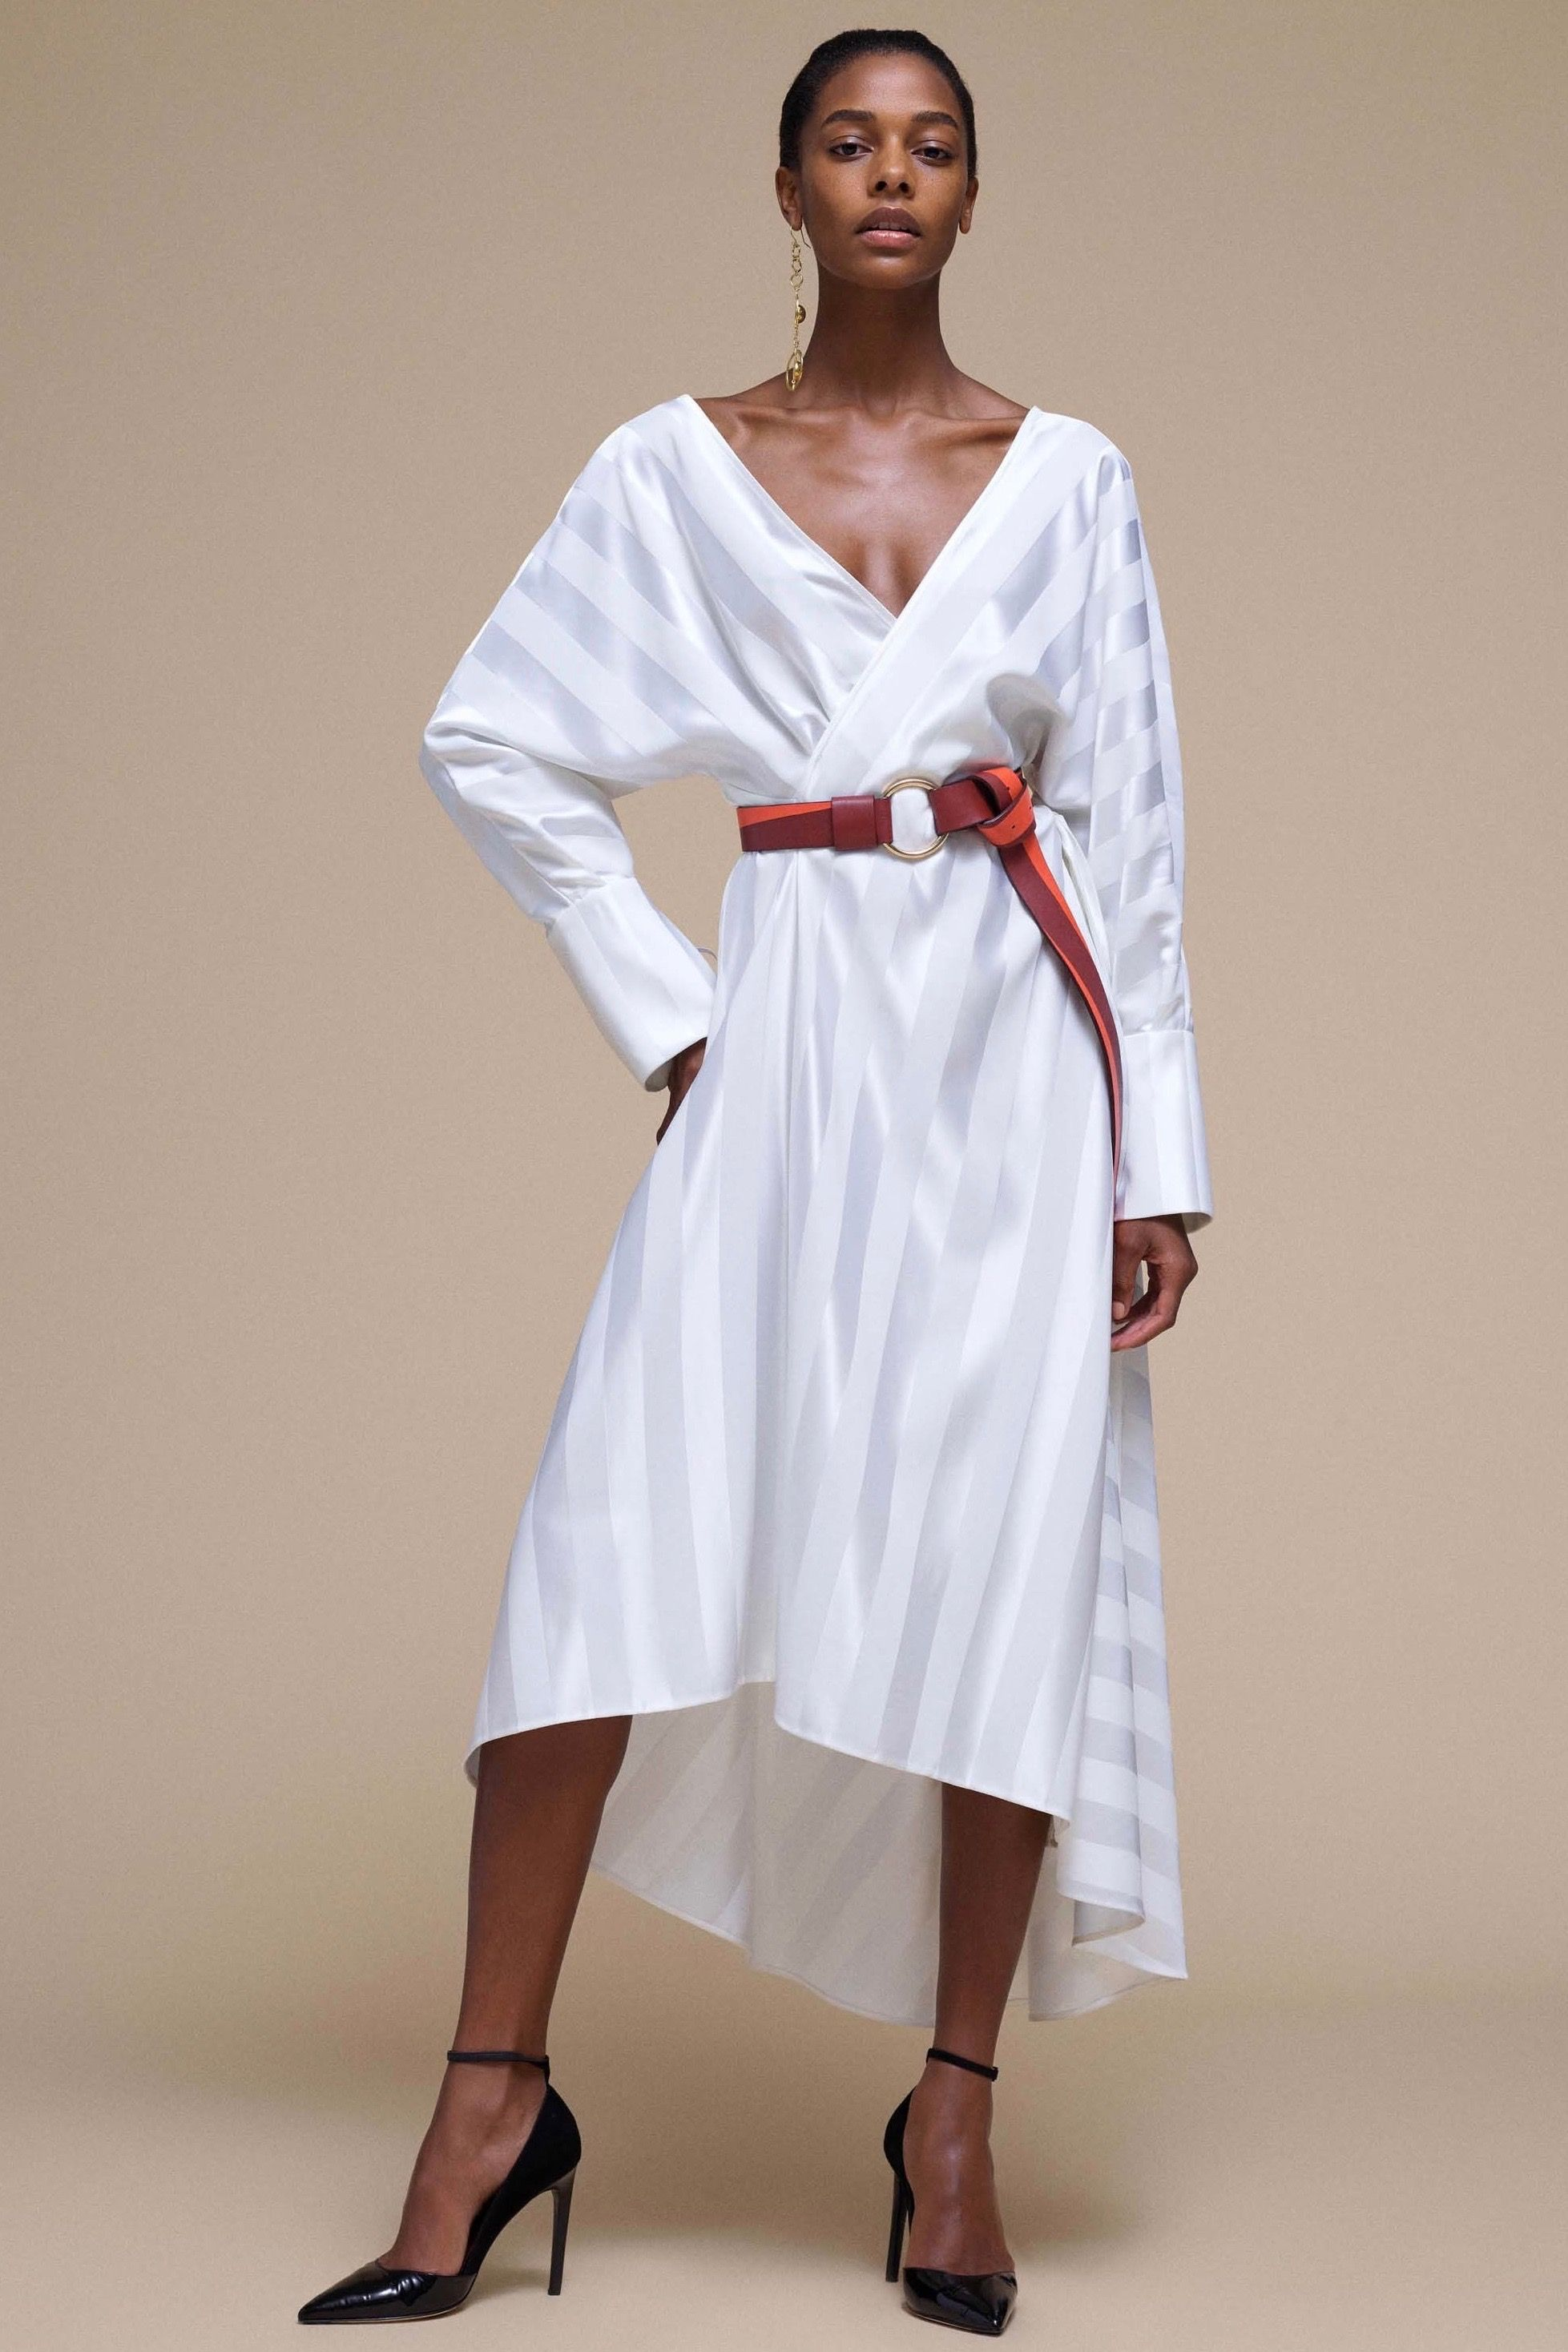 Non traditional wedding dress   NonTraditional Wedding Dresses for the Unconventional Bride